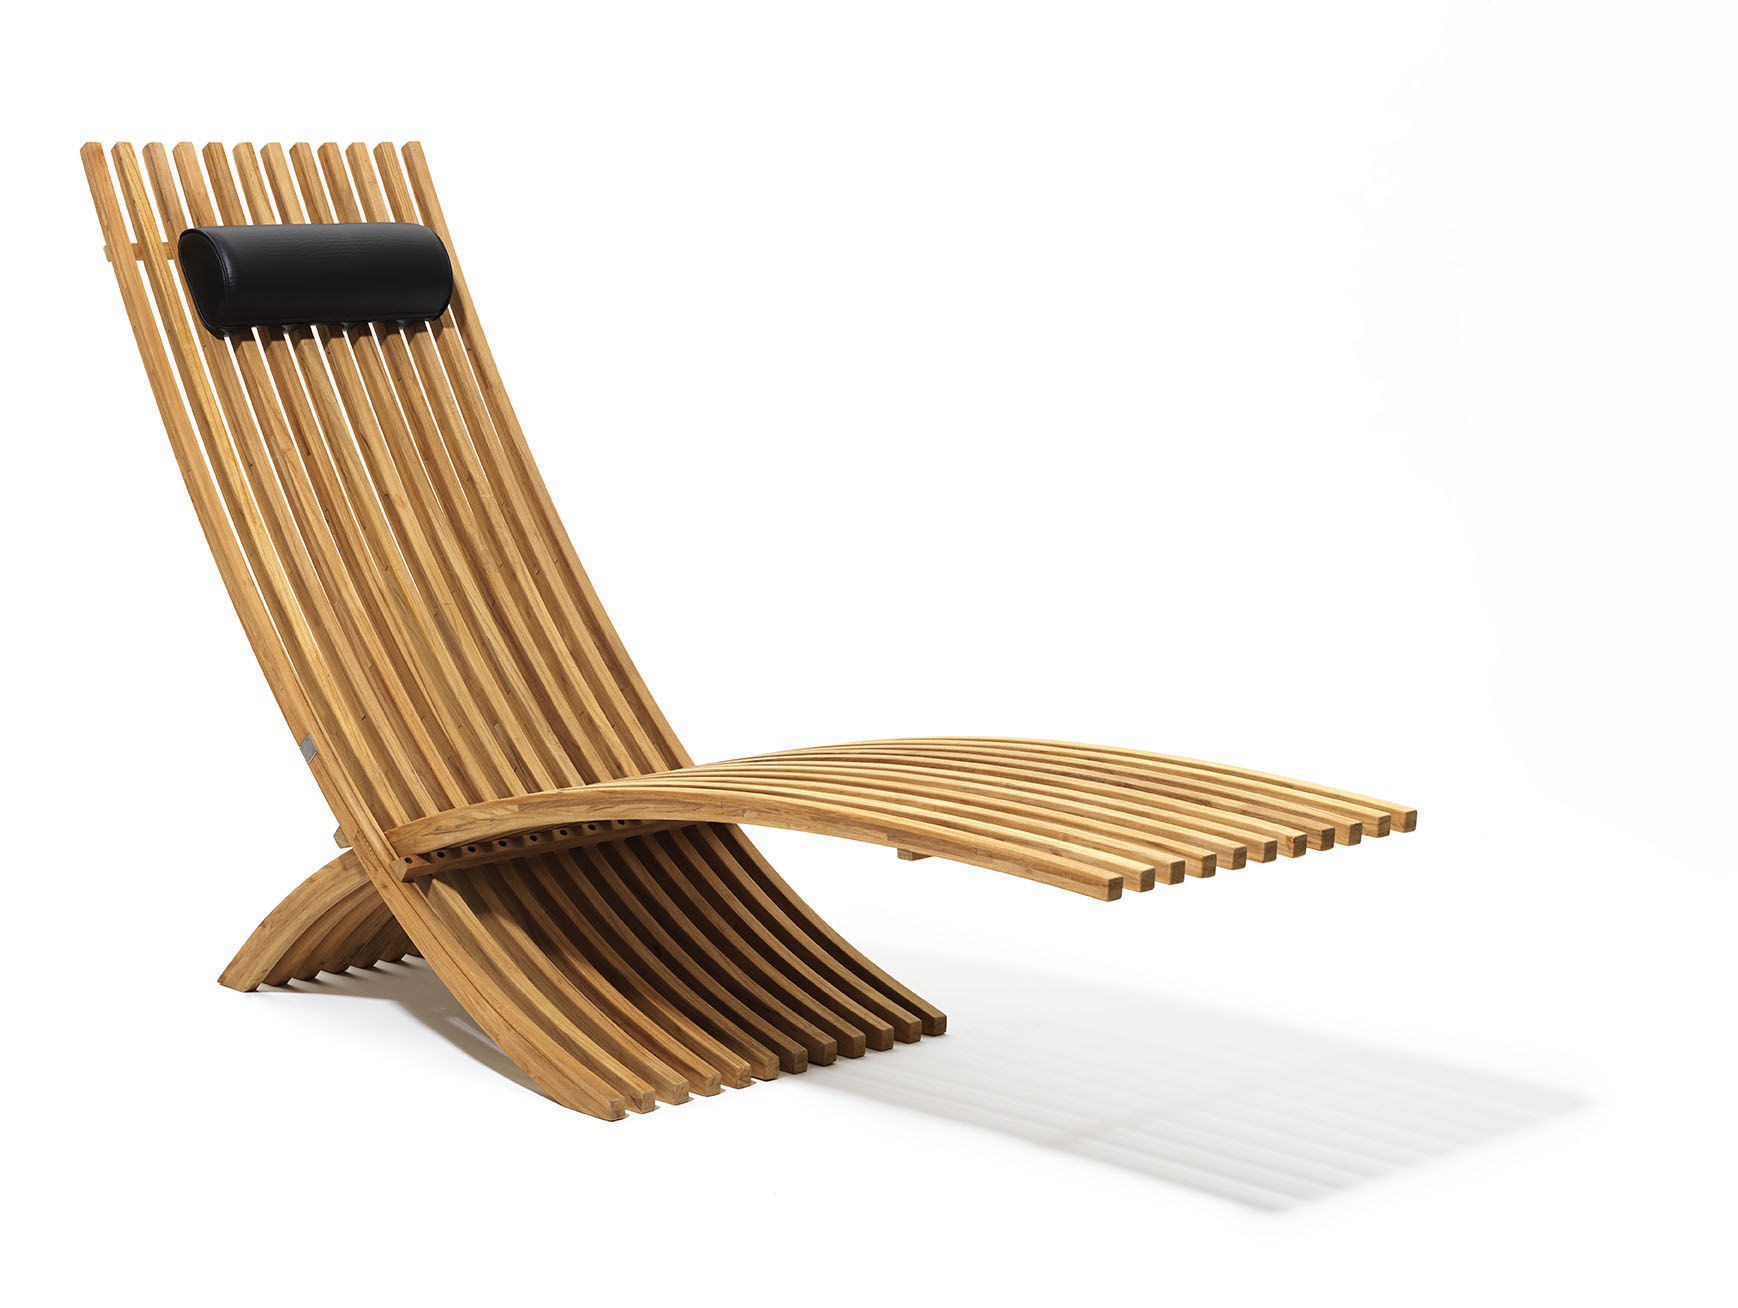 Chaise longue contemporaine en teck de jardin NOZIB by Nils